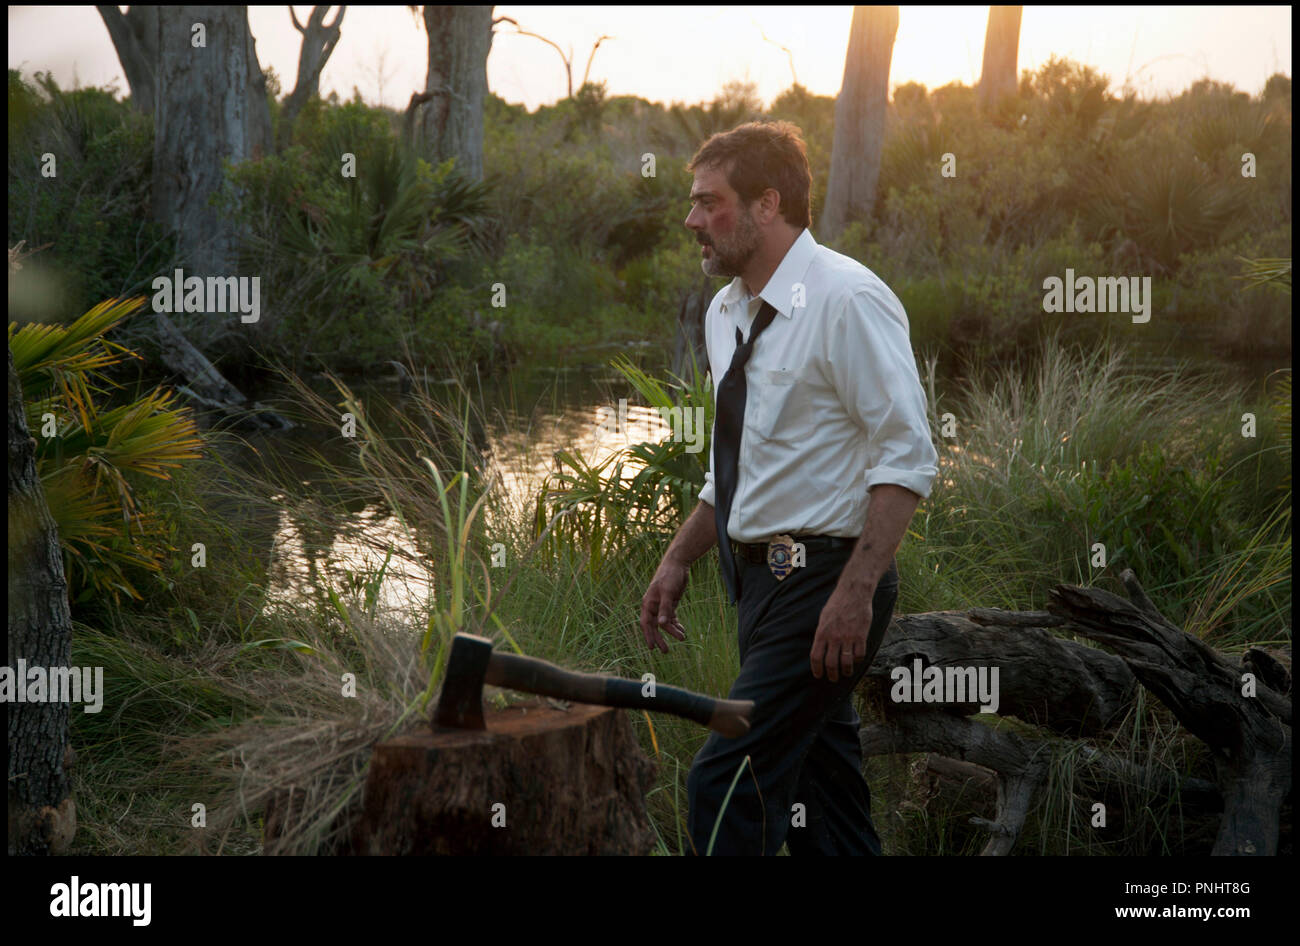 Prod DB © Forward Pass - Gideon Productions - Infinity Media / DR KILLING FIELDS (TEXAS KILLING FIELDS) de Ami Canaan Mann 2011 USA avec Jeffrey Dean Morgan tiré d'une histoire vraie, polar, thriller - Stock Image